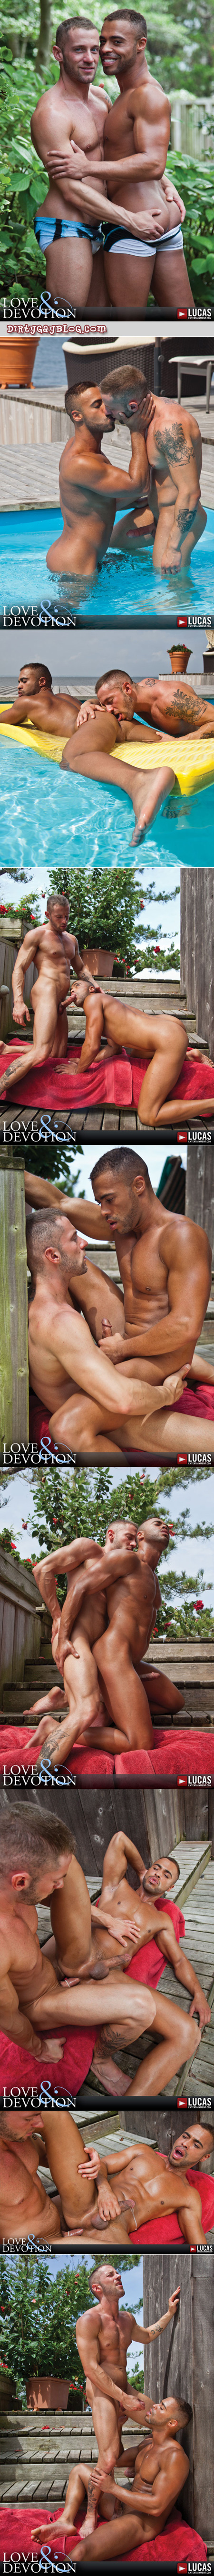 Slim, muscular guy fucks a black man by the pool and gives him a cum facial.